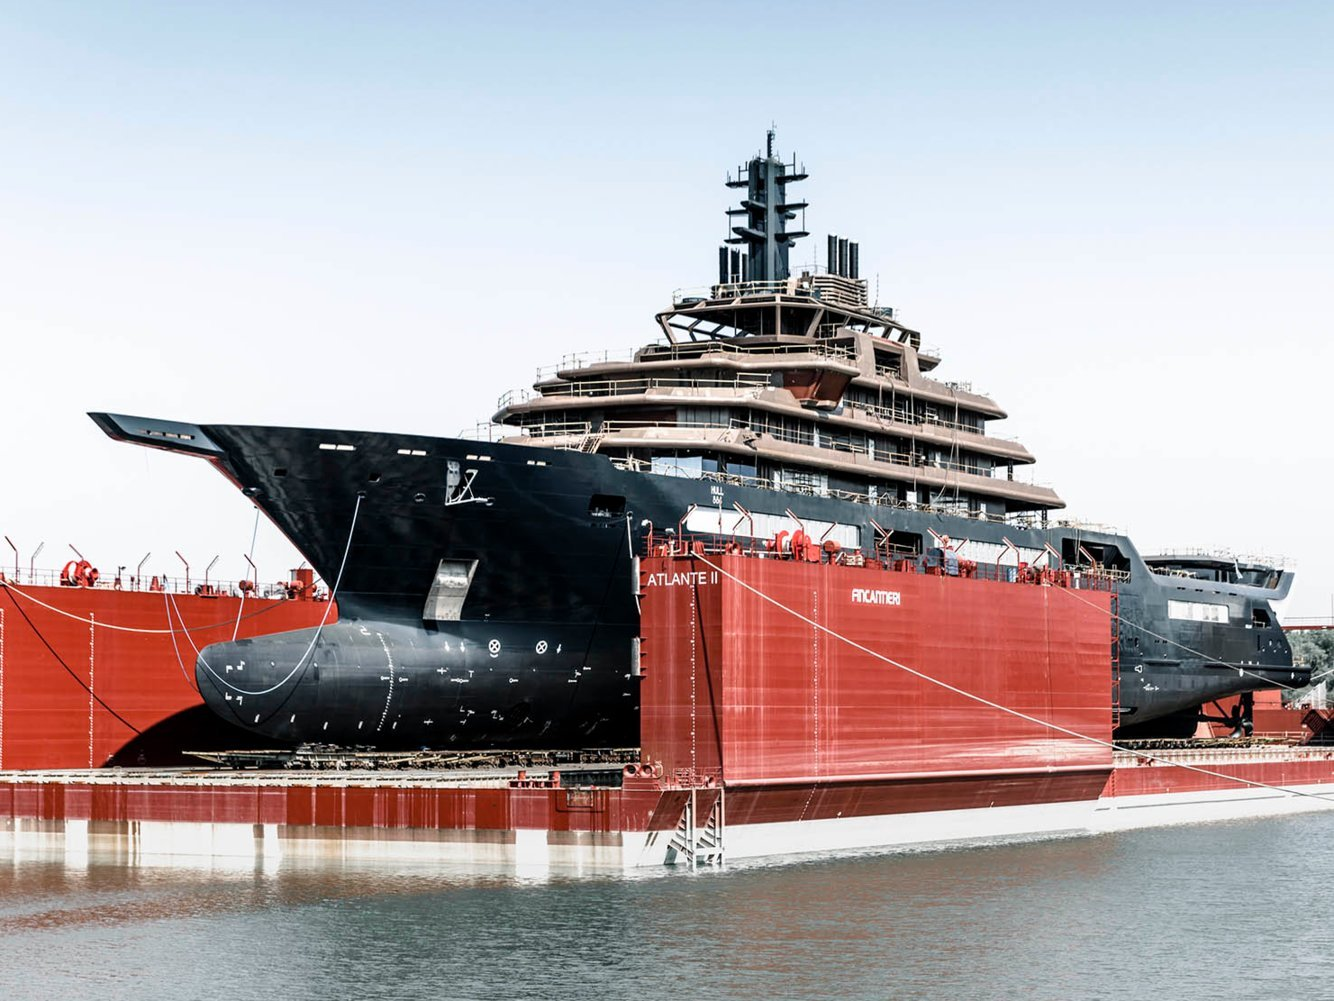 A sleek black yacht that just launched is now the world's largest superyacht. Take a look at the 600-foot vessel owned by a Norwegian billionaire.